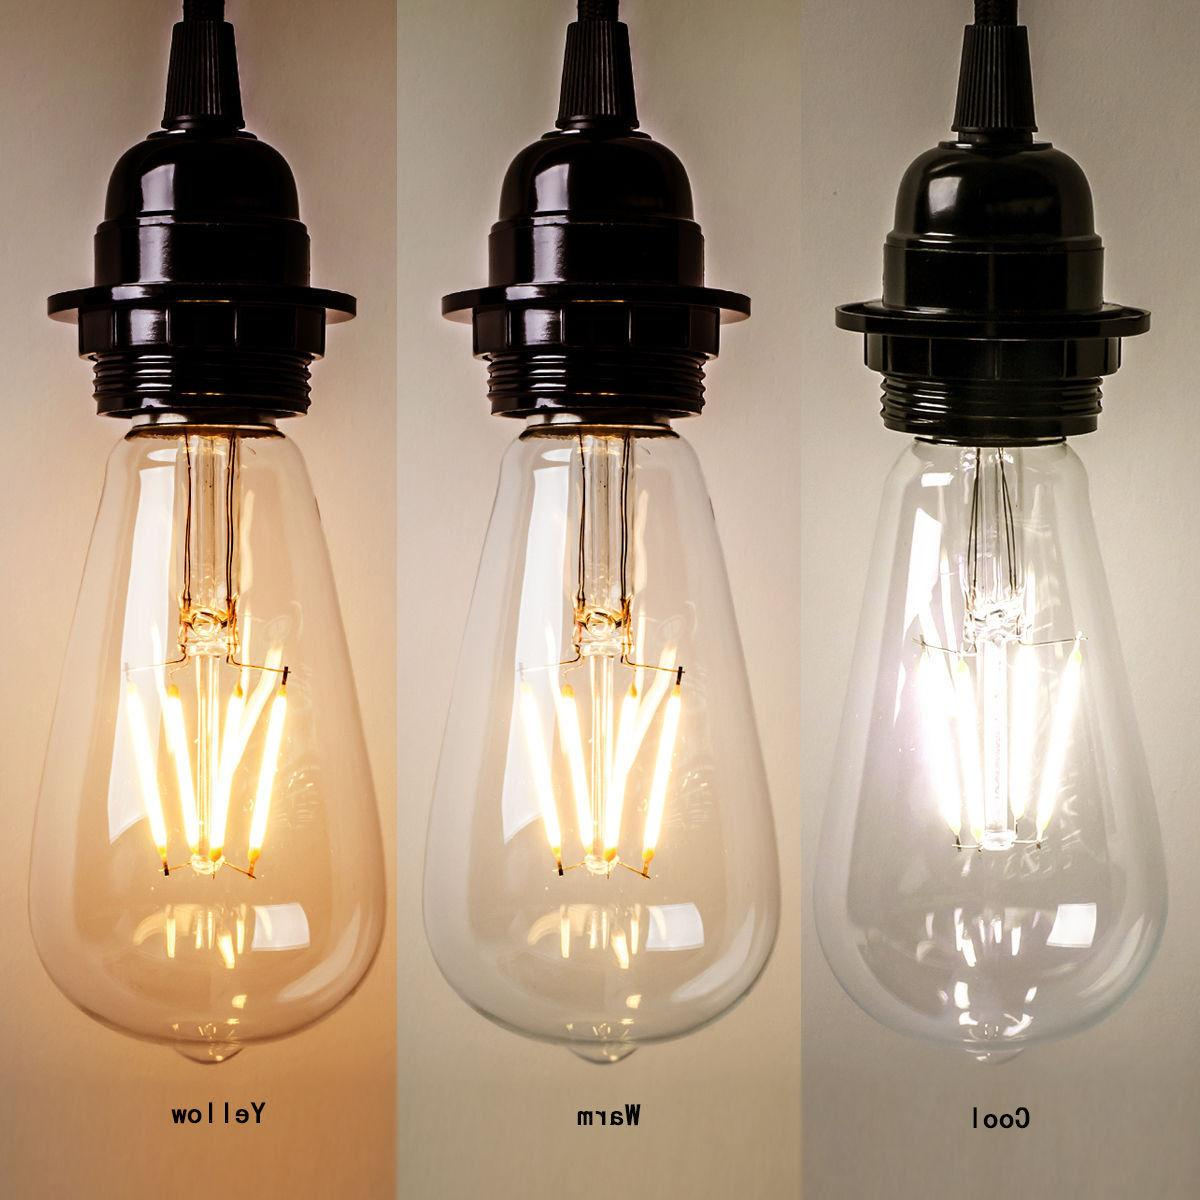 New Vintage Retro Edison E27 2W-8W Screw LED Filament Light